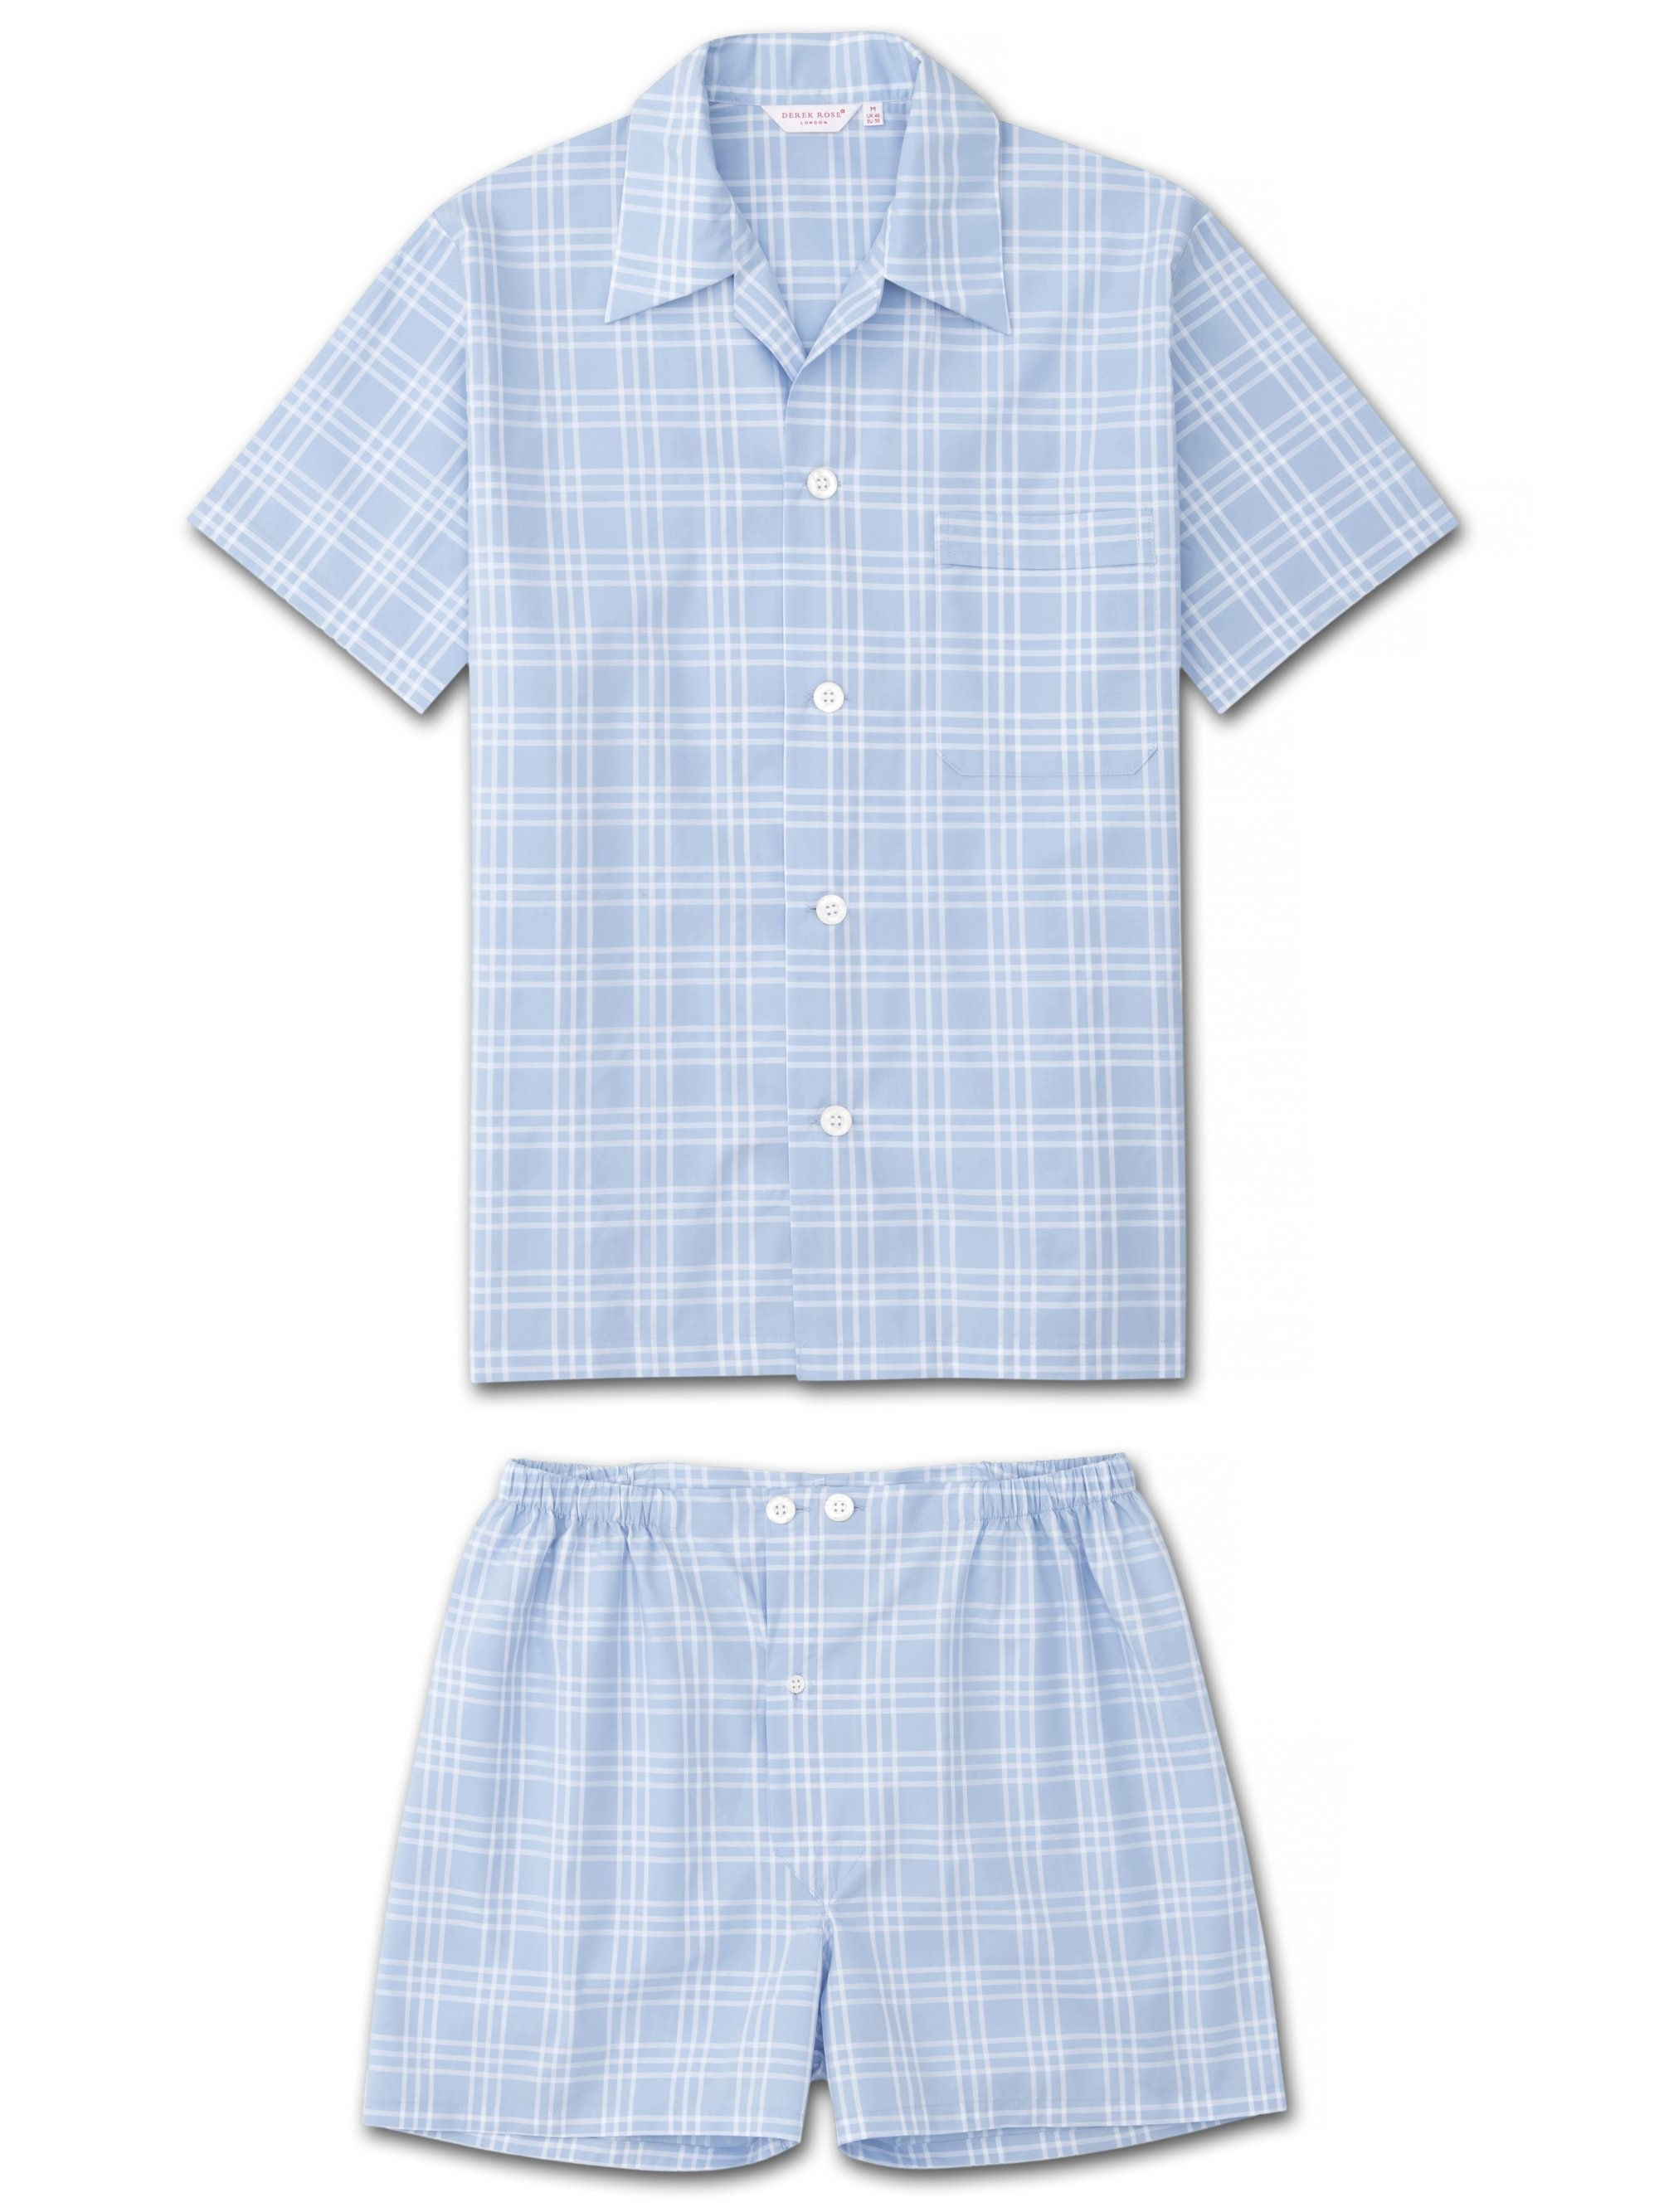 Men's Short Pyjamas Barker 27 Cotton Check Blue